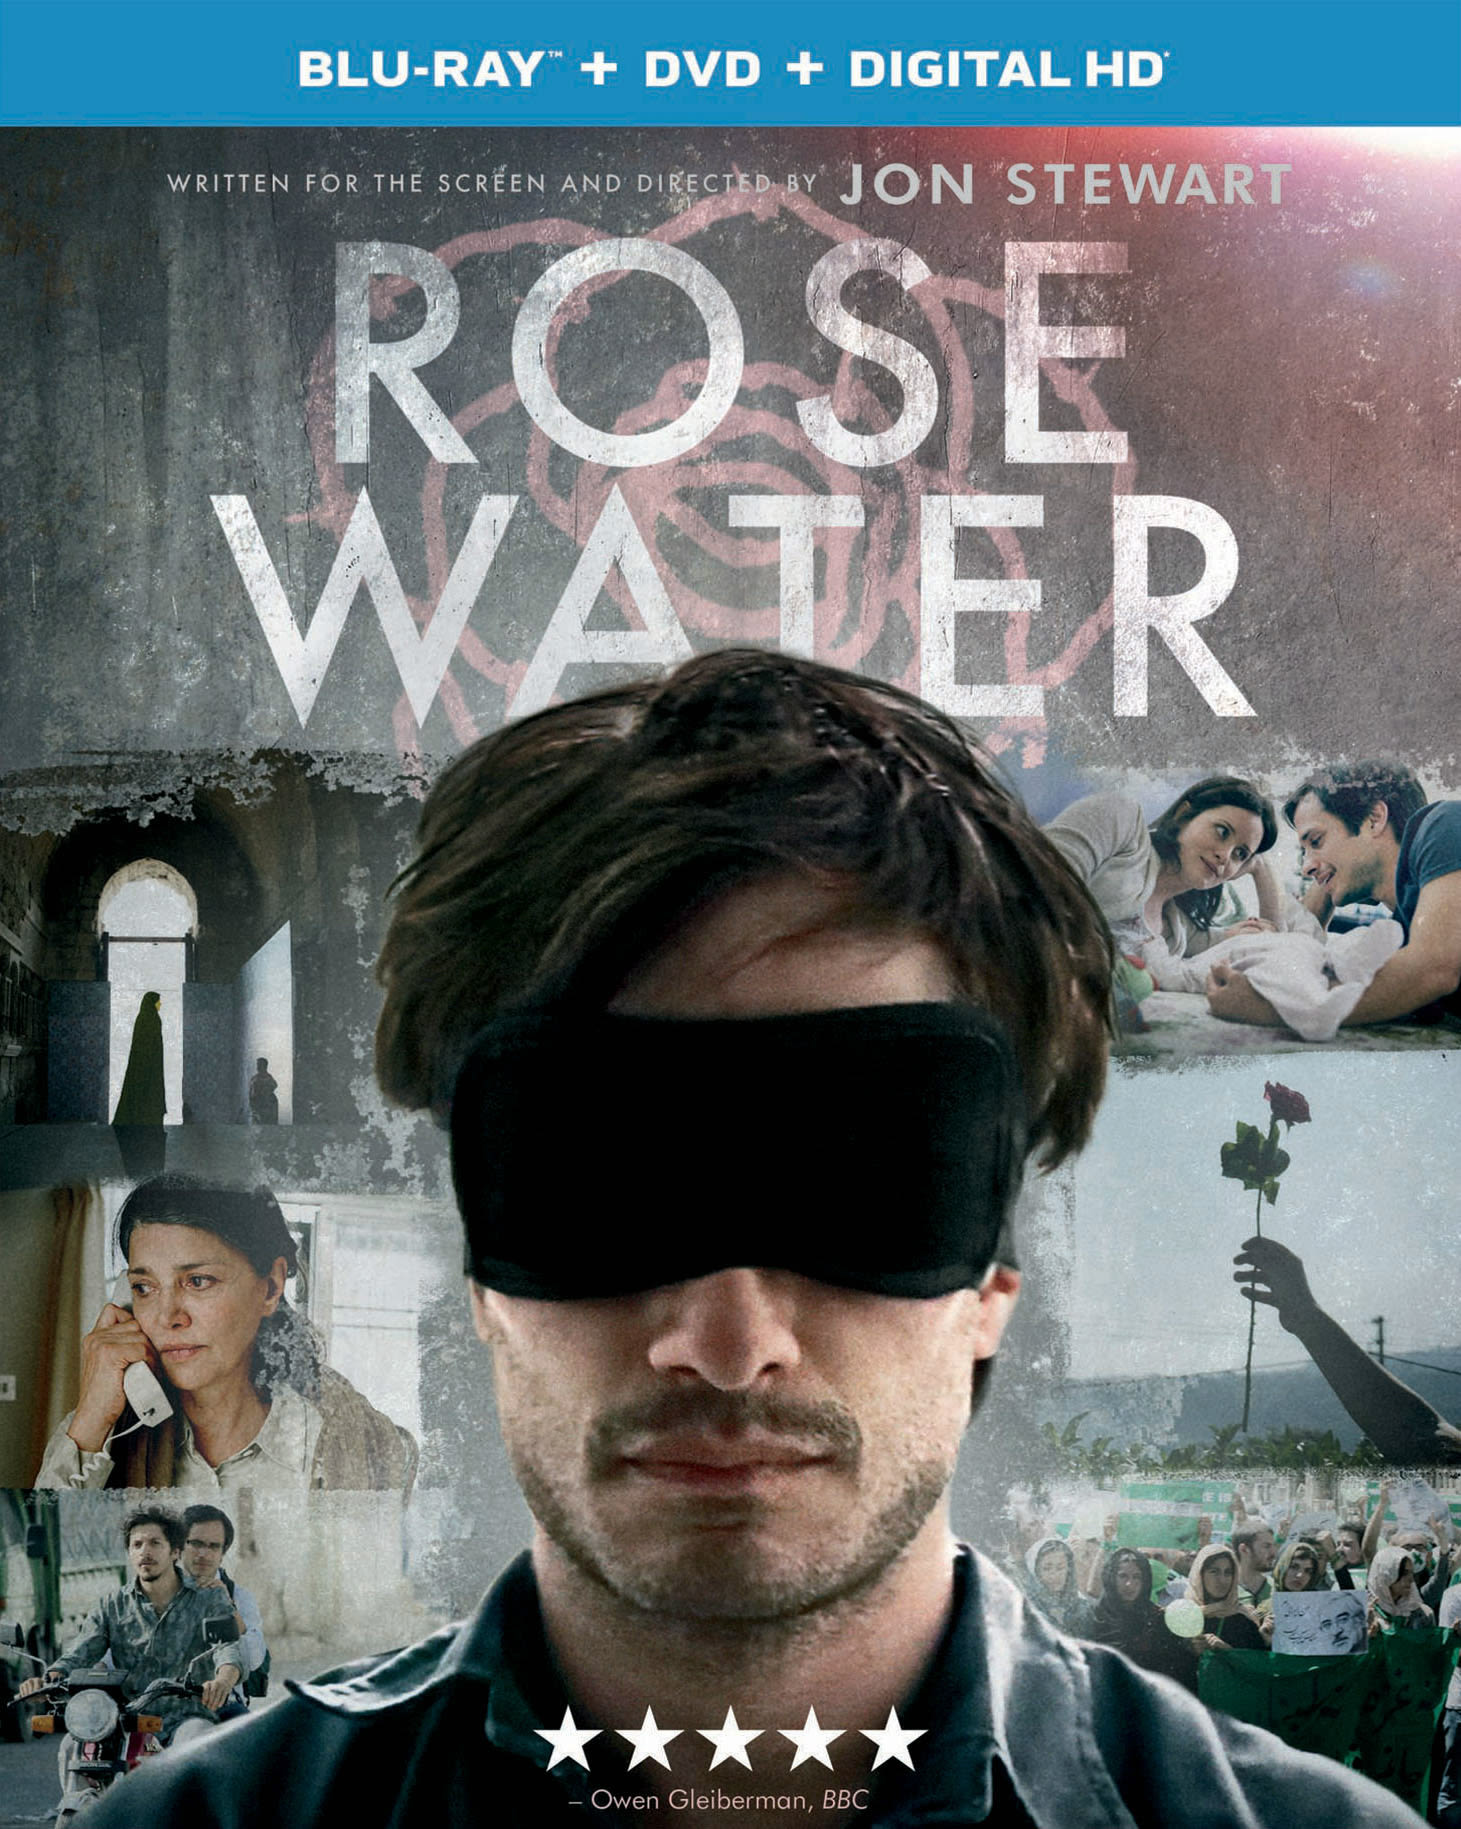 Rosewater (DVD + Digital) [Blu-ray]